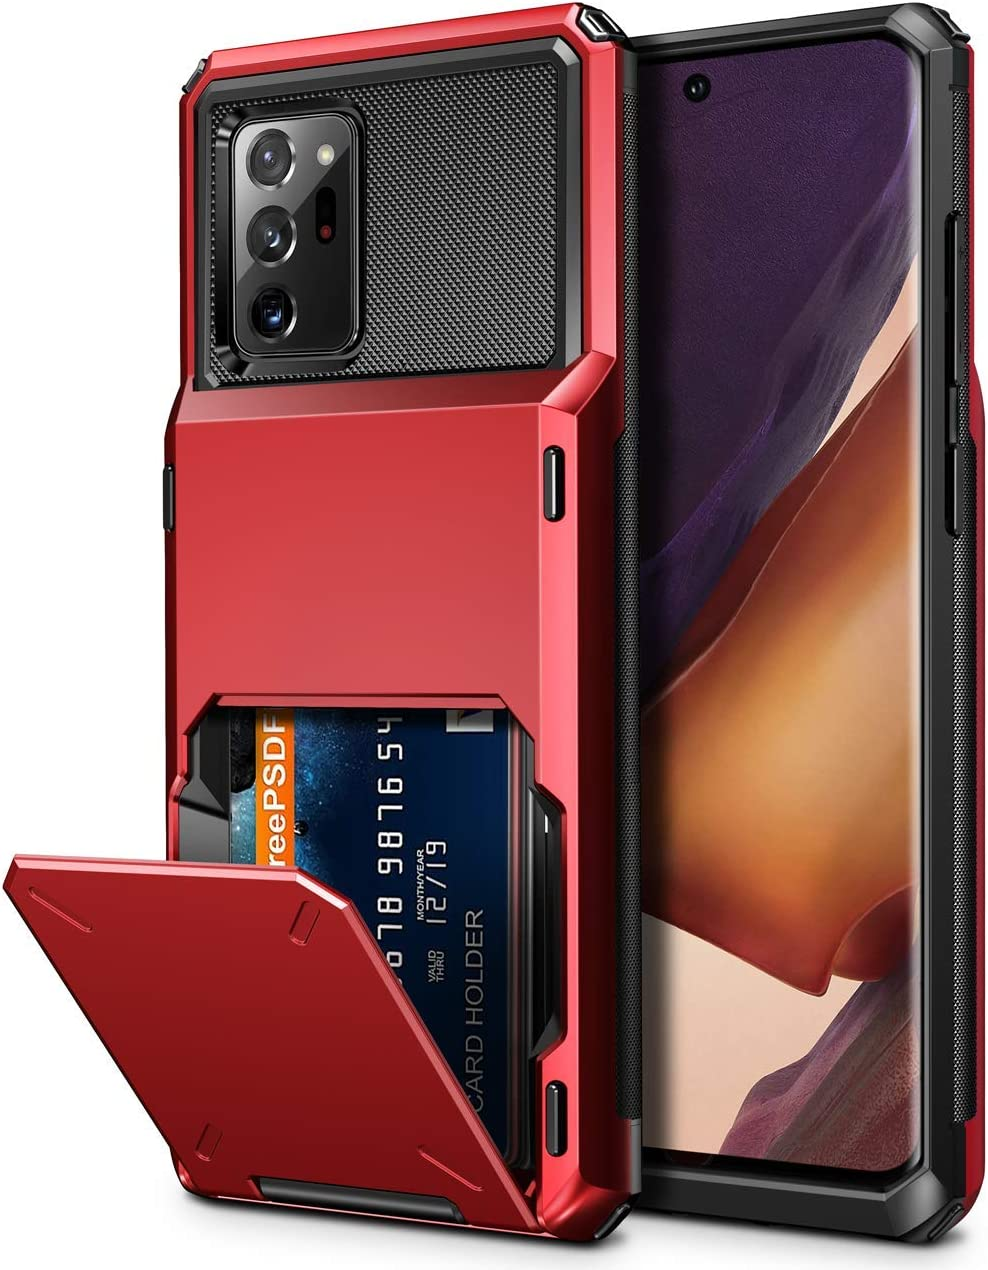 Vofolen for Galaxy Note 20 Ultra Case 5G Wallet 4-Card Flip Cover Credit Card Holder Slot Back Pocket Dual Layer Protective Hybrid Hard Shell Bumper Armor Case for Samsung Note 20 Ultra 6.9 Red